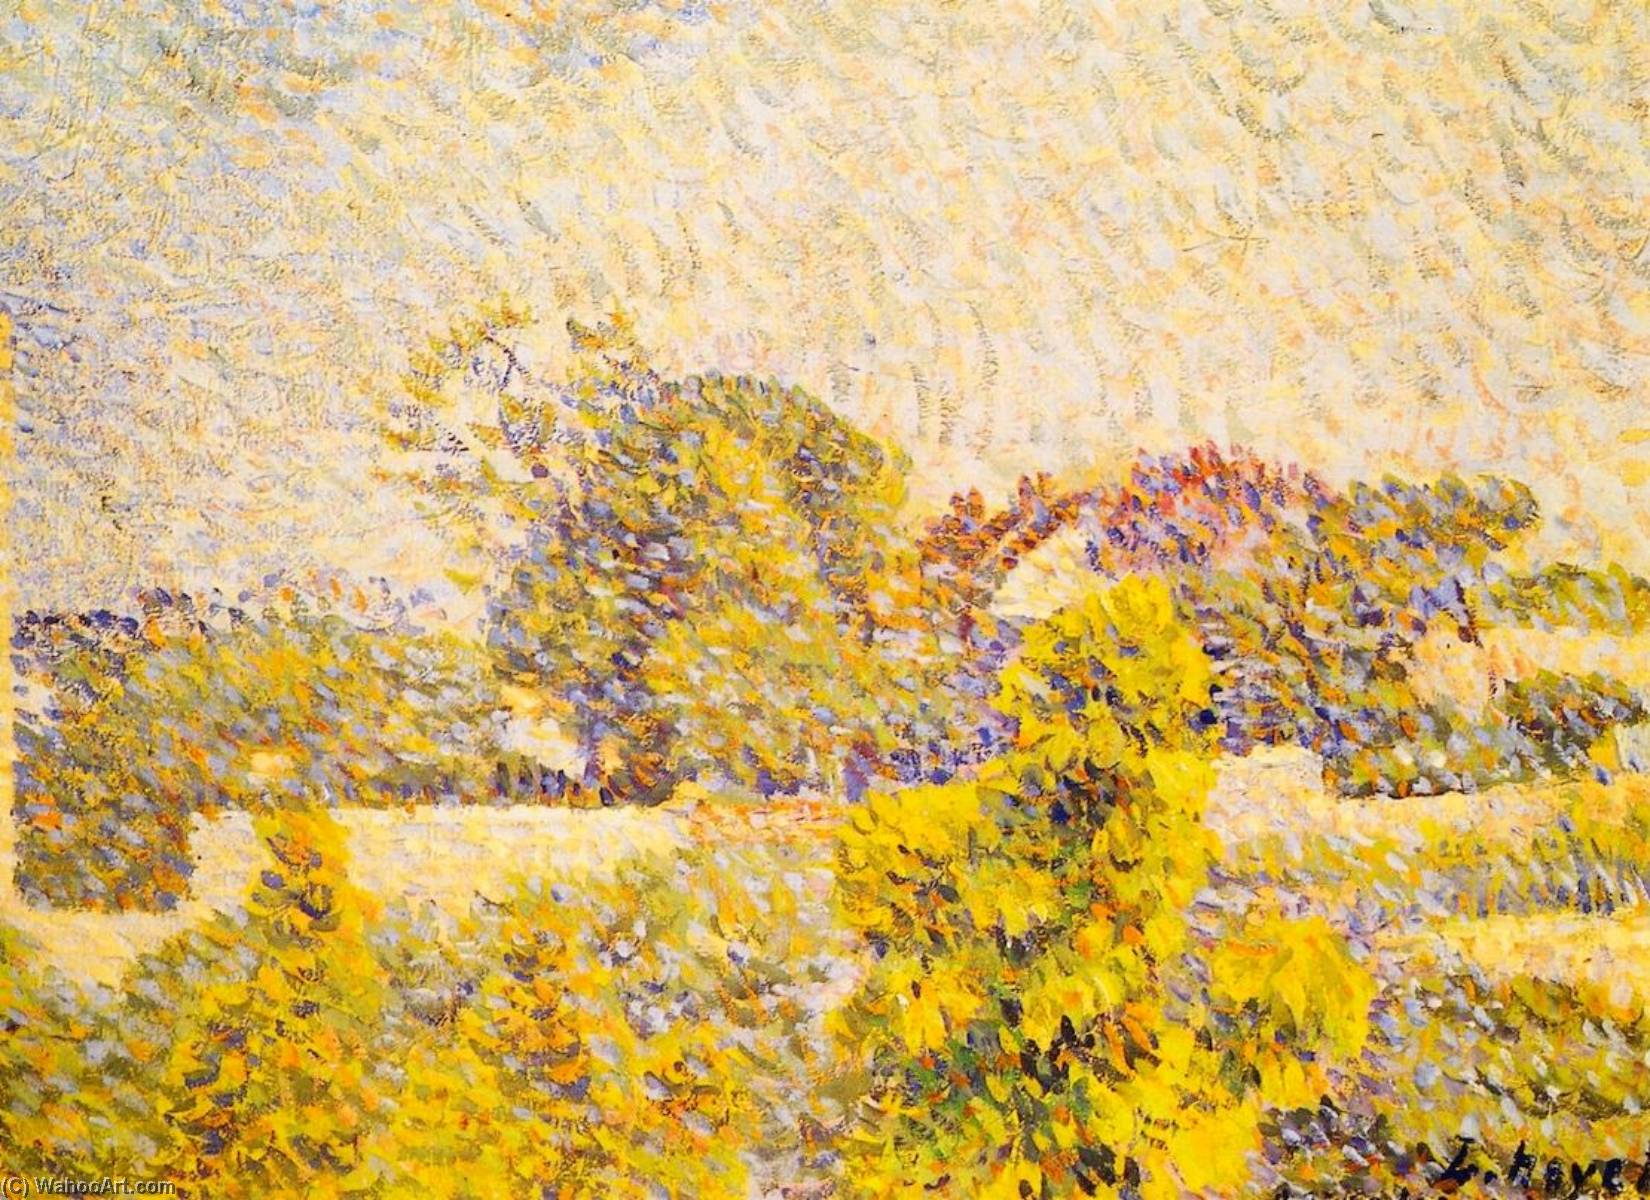 Landscape, 1888 by Louis Hayet (1864-1940) | Oil Painting | WahooArt.com